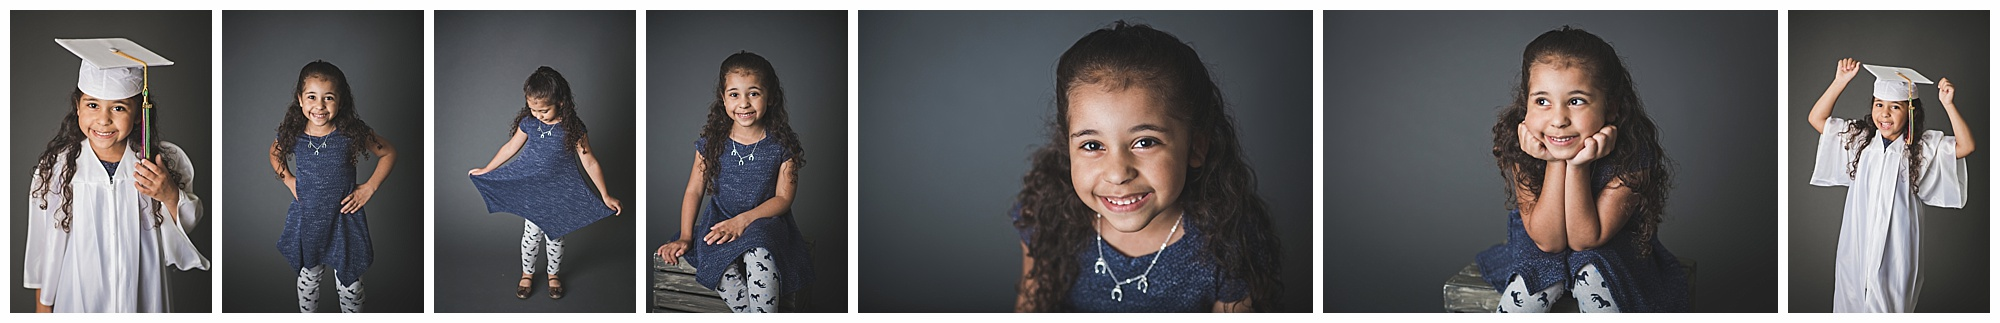 school picture day Kristina Rose Photography